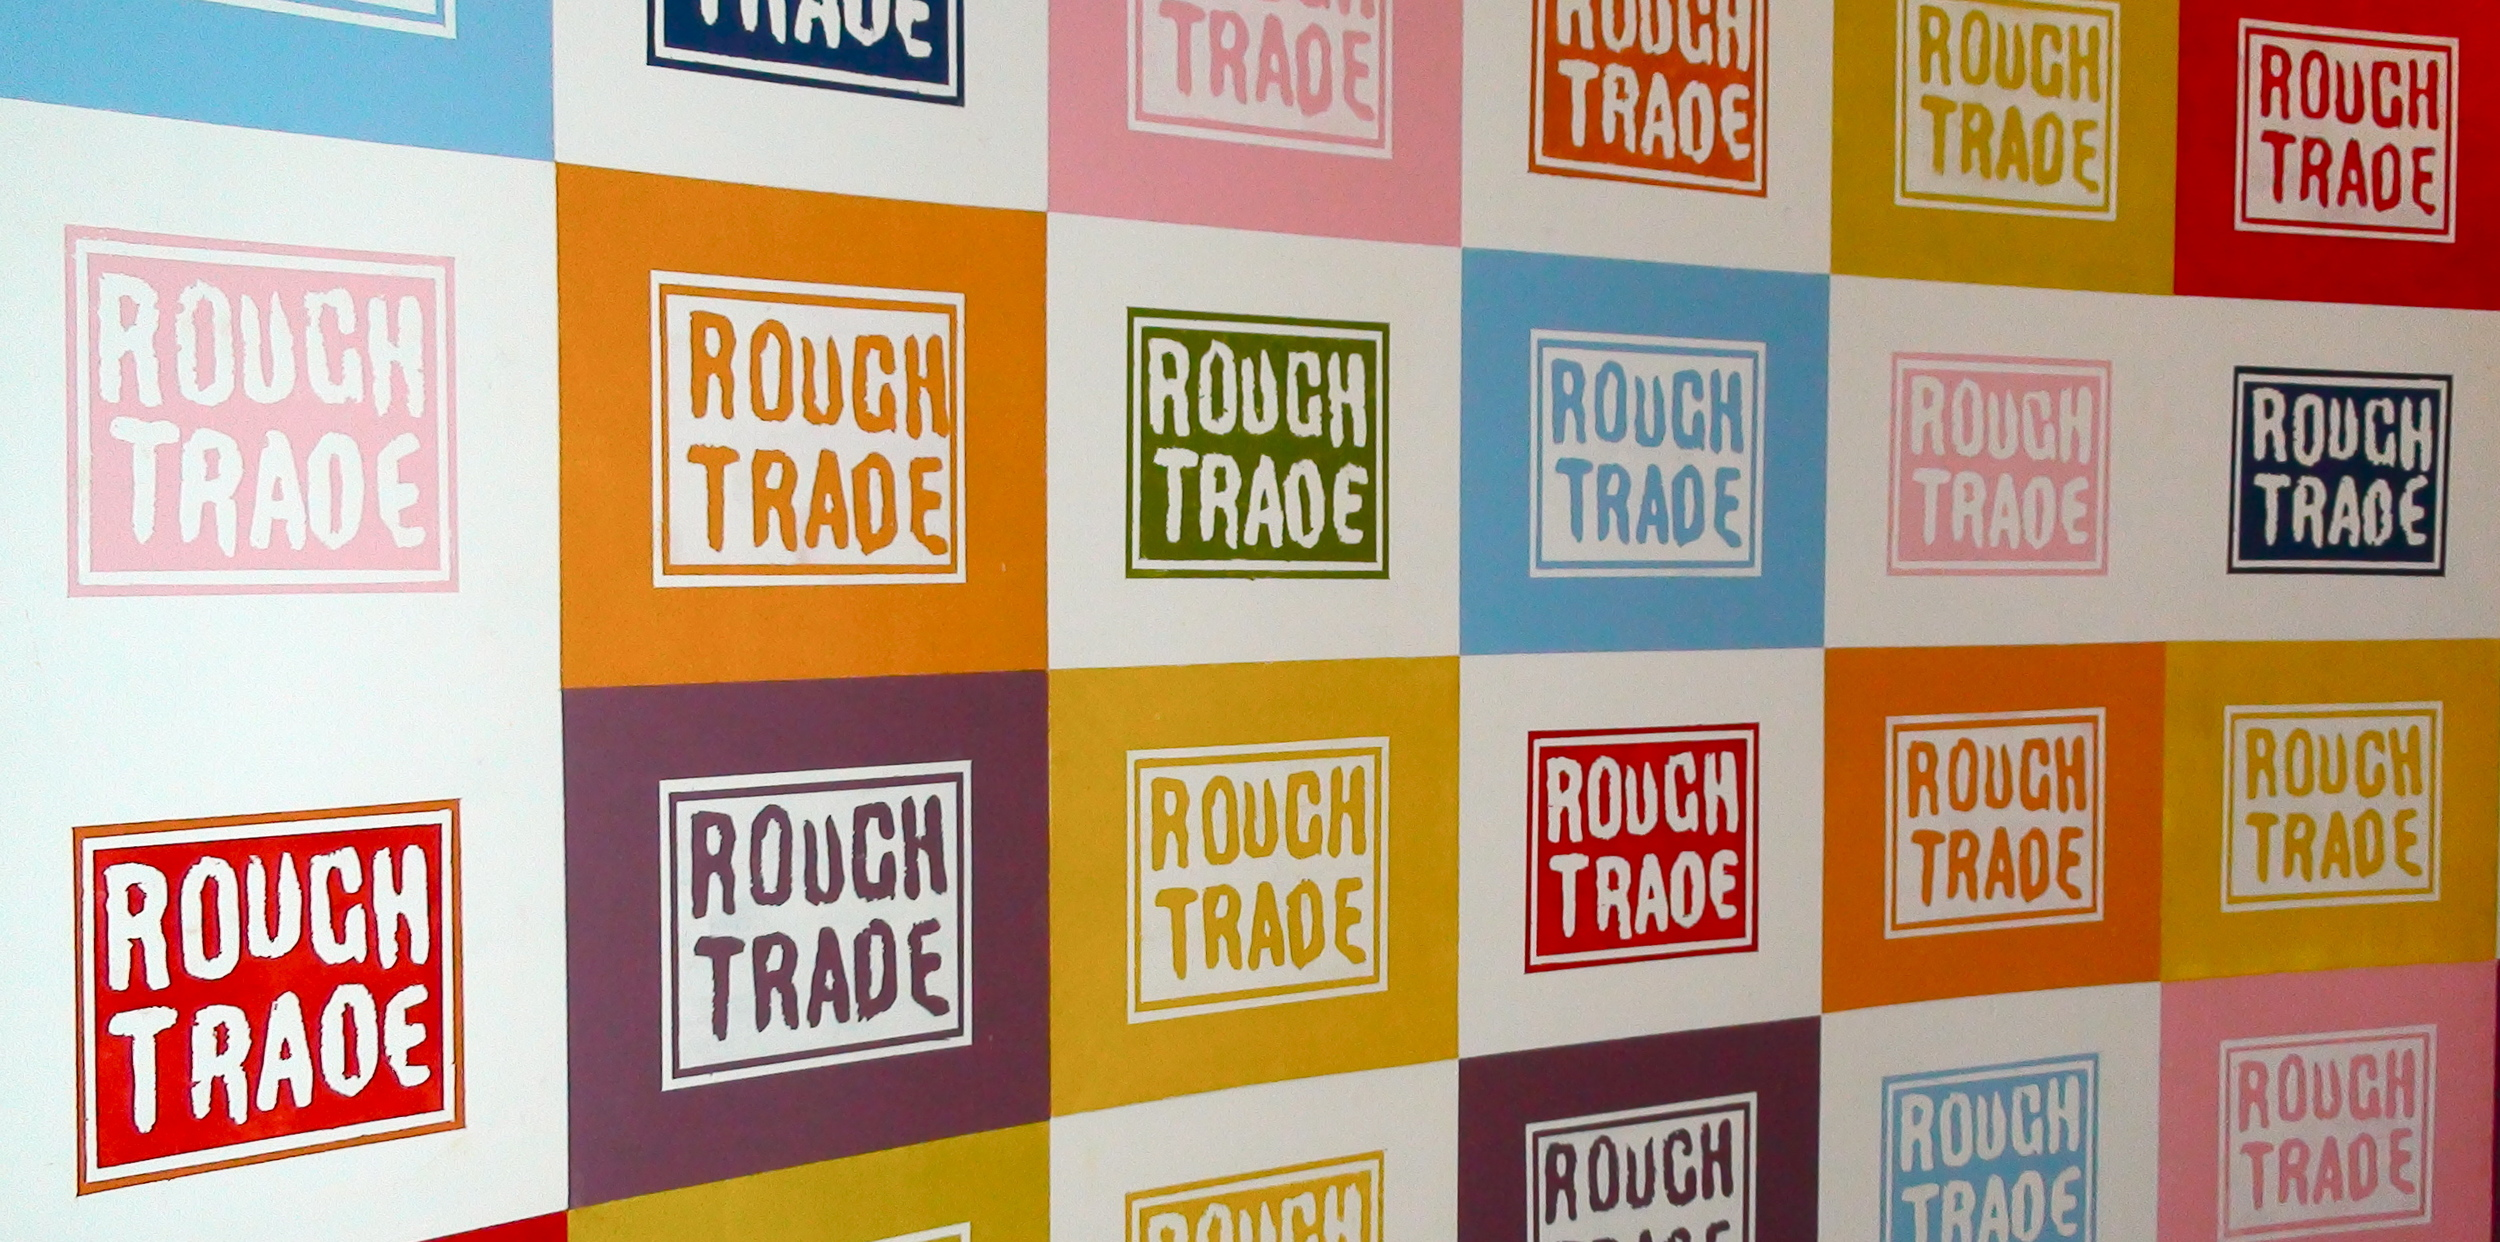 roughtraderecordsmural